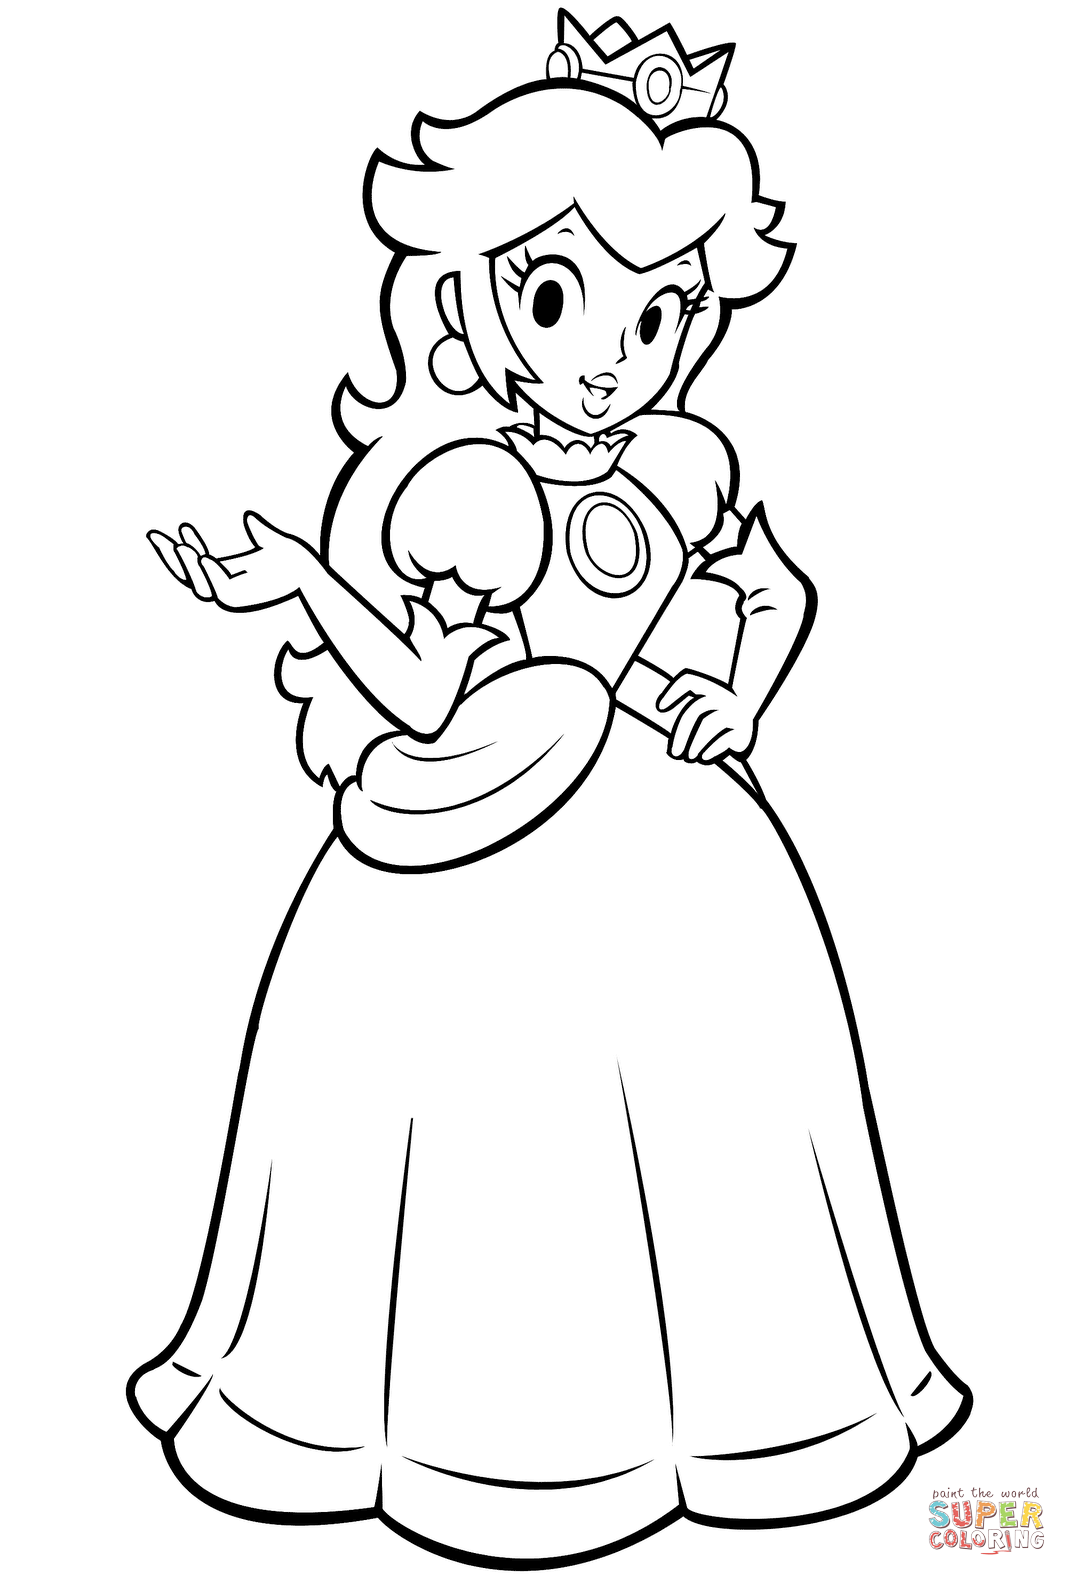 Paper Princess Daisy Coloring Pages Super Mario Coloring Pages Mario Coloring Pages Princess Coloring Pages